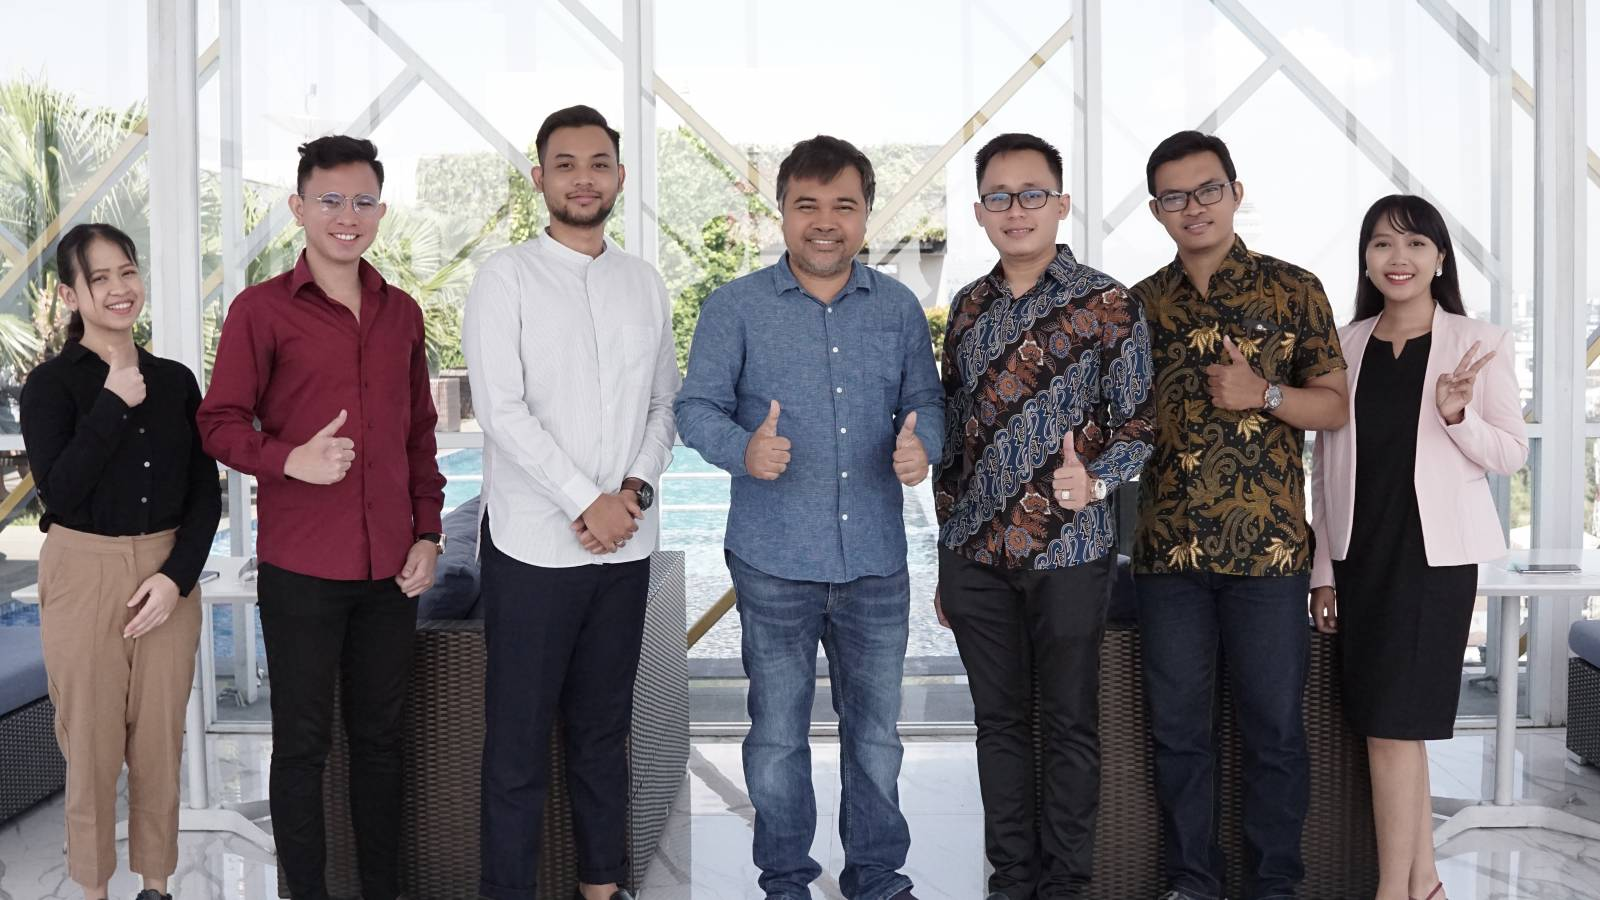 Owner Emporio Architect visit with Emporio Architect Bandung Team 8